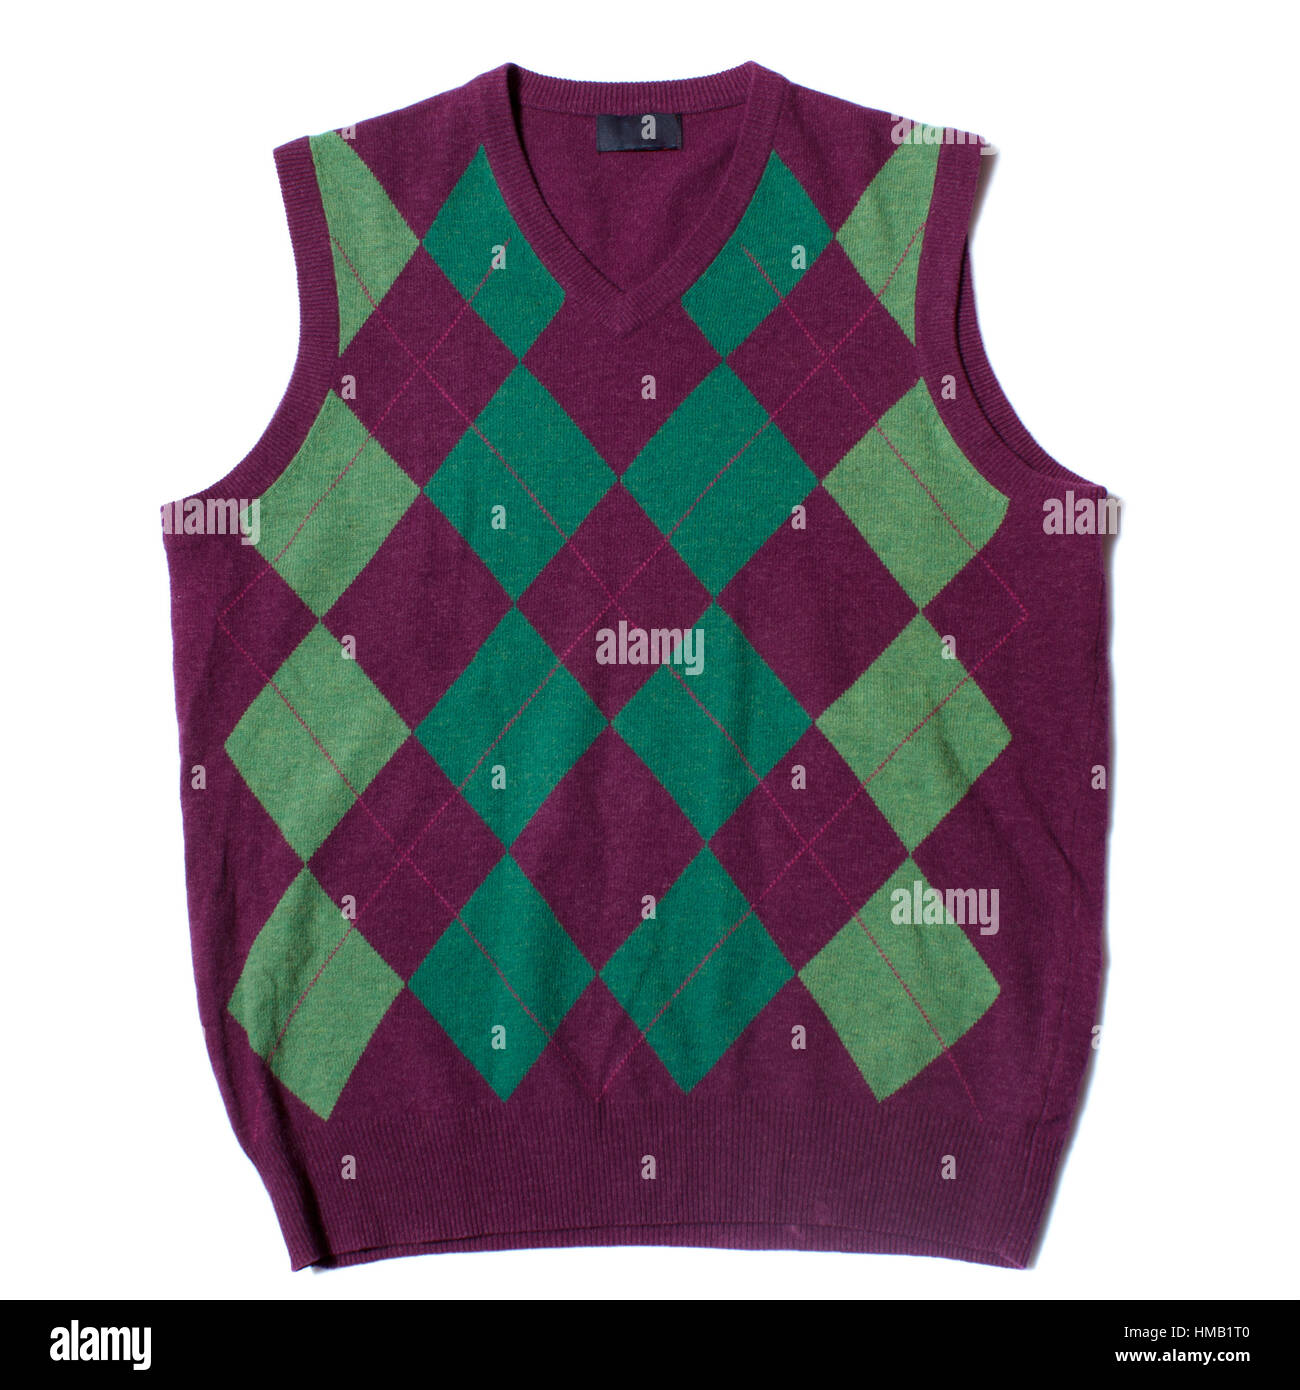 Red and green vest - Stock Image